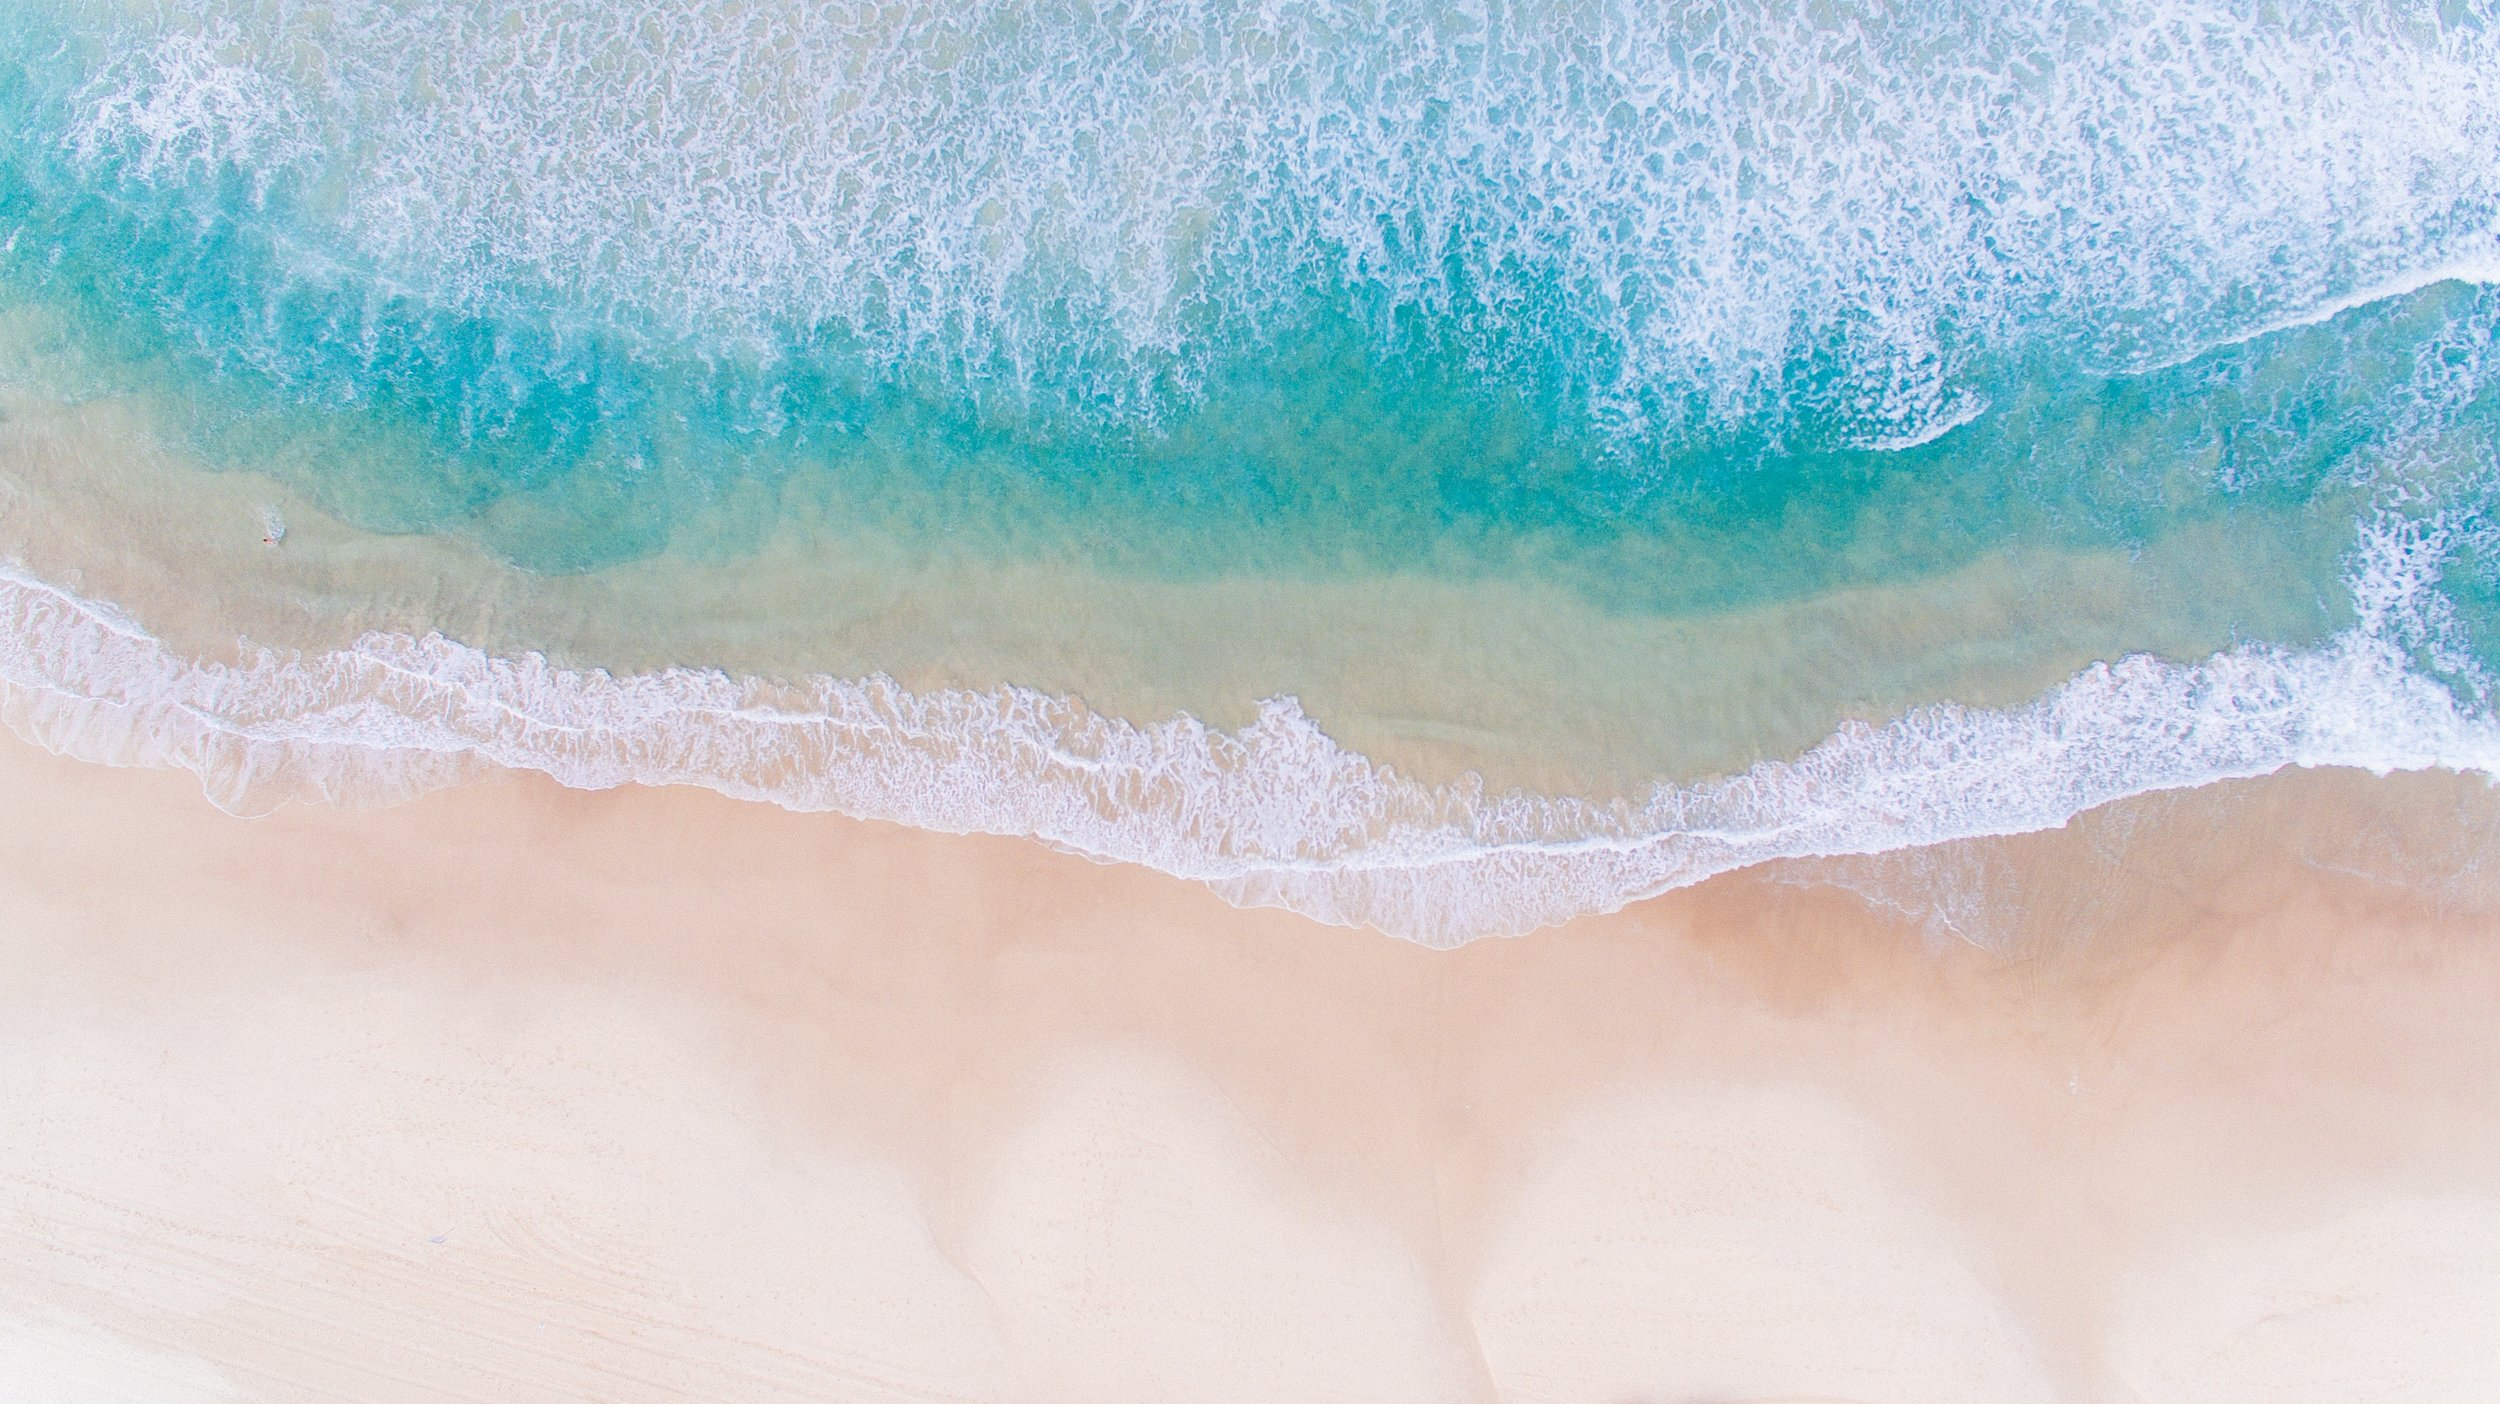 aerial view of turquoise water and white sands